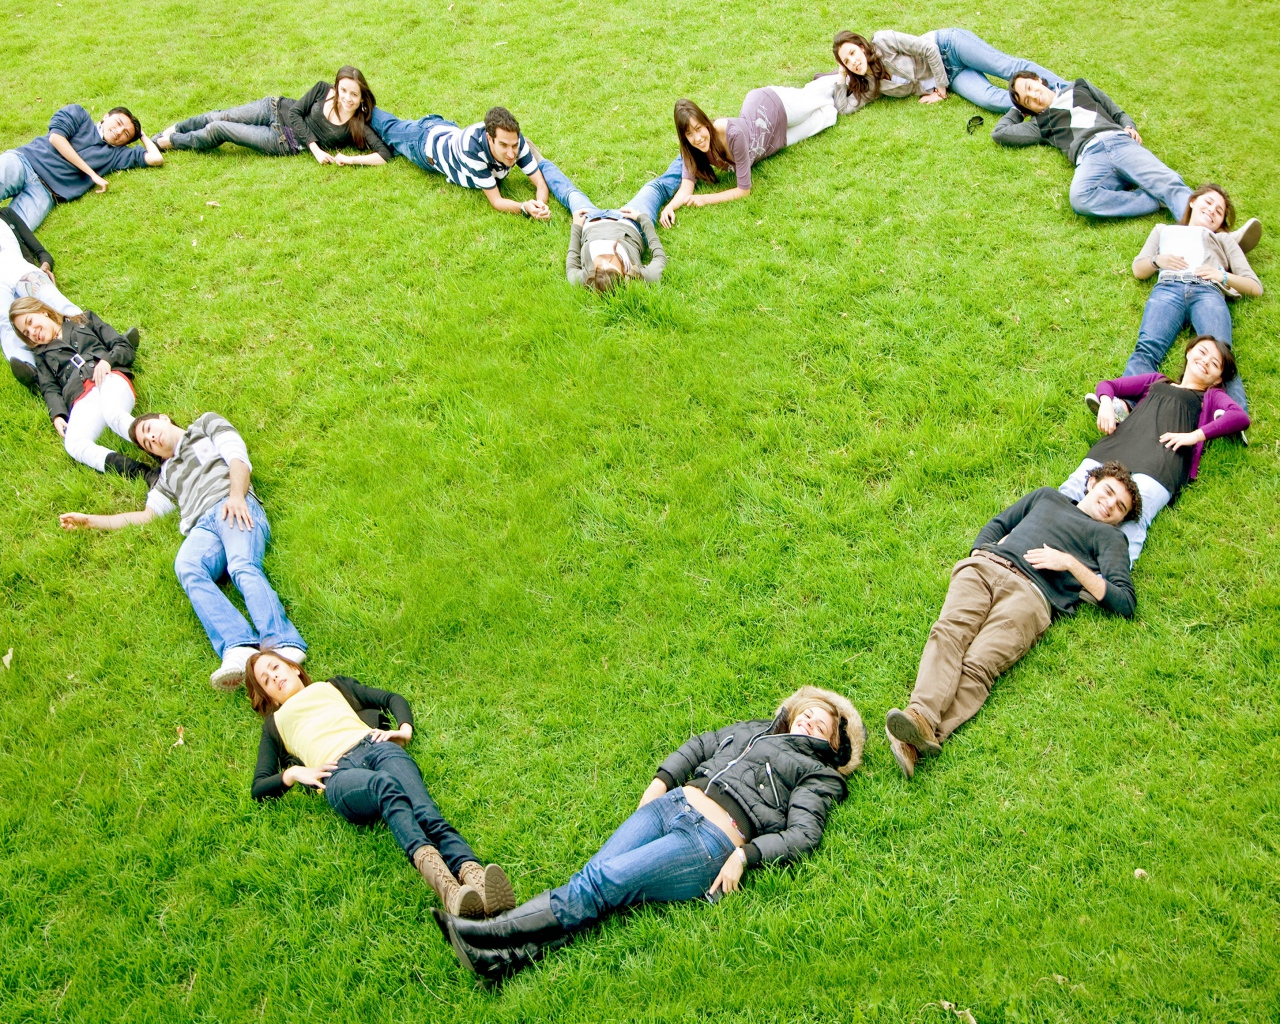 people_heart_grass_love_80424_1280x1024